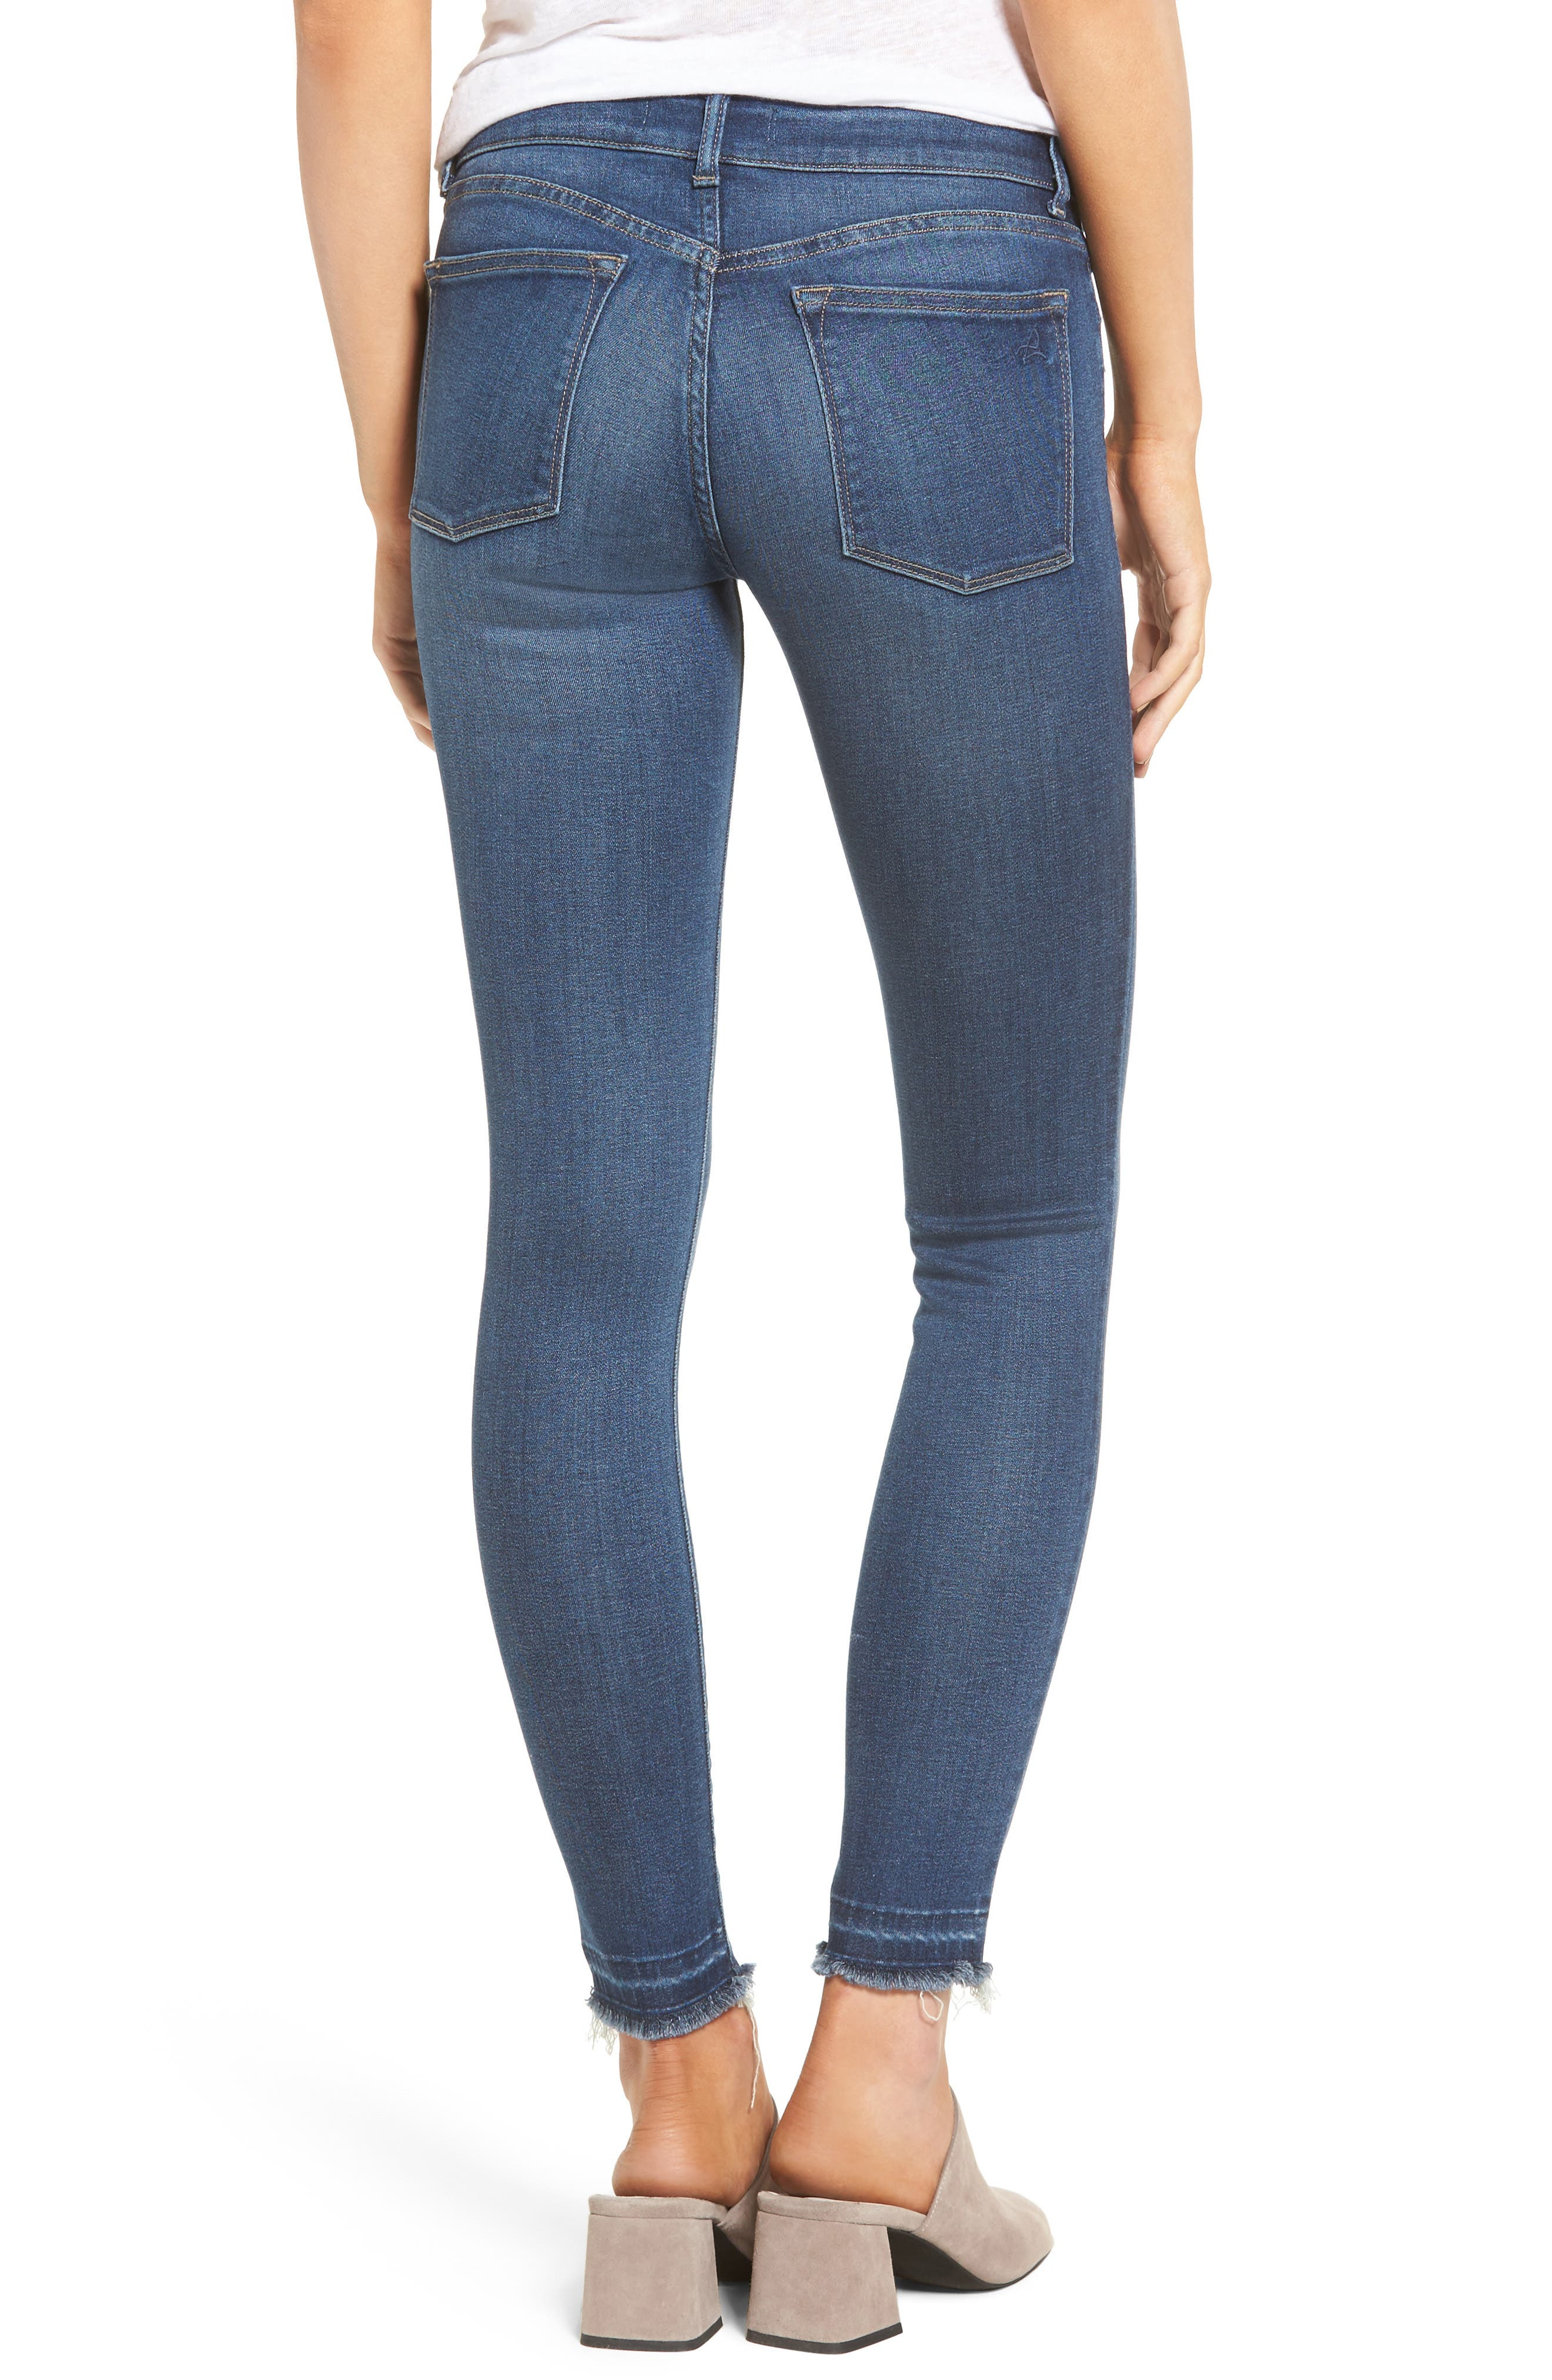 Alternate Image 2  - DL1961 Emma Power Legging Jeans (Quilter)